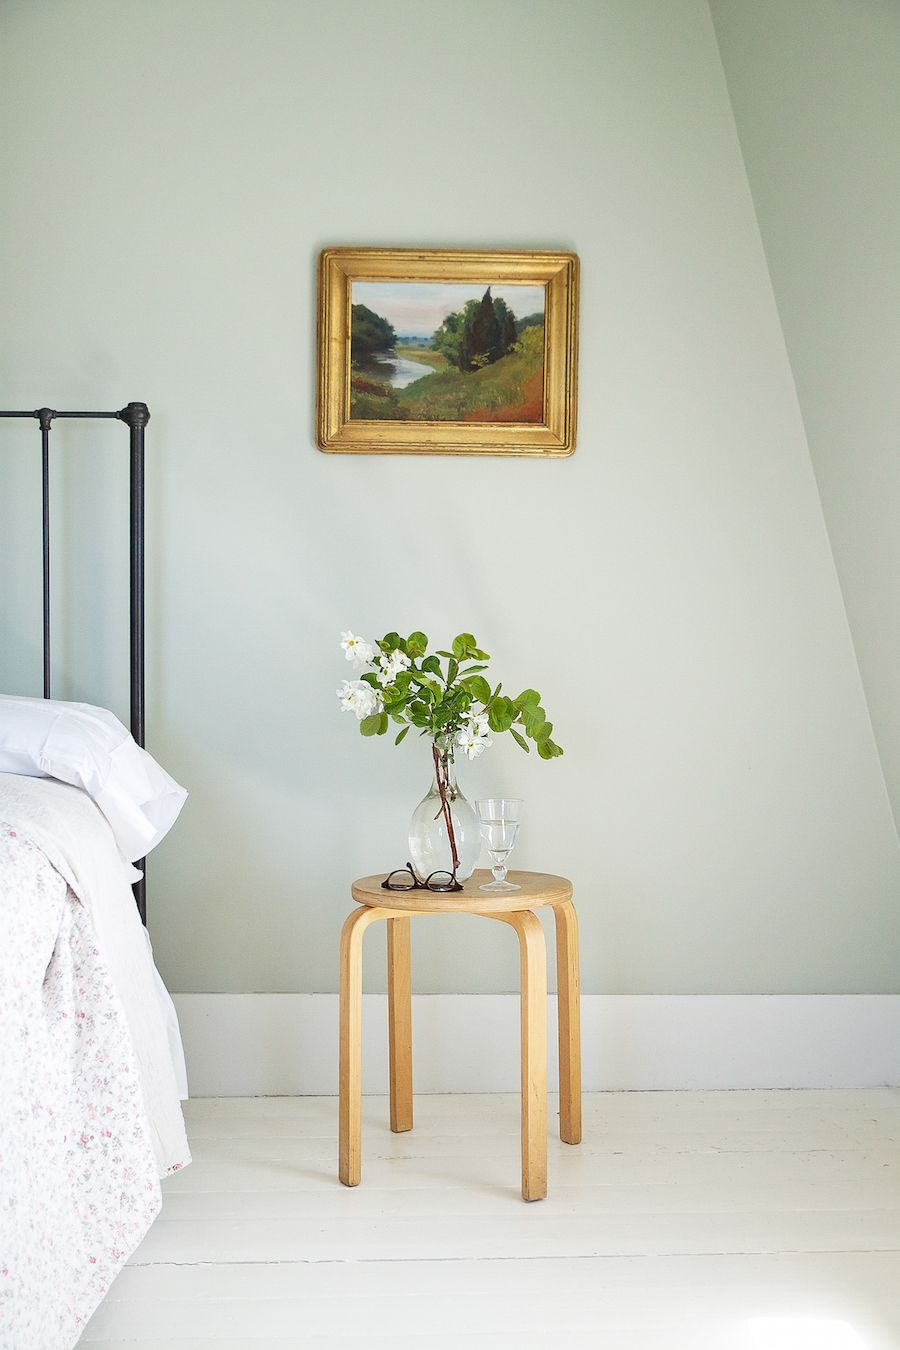 Cape Cod Summer Bedrooms Refreshed With Farrow Ball Cromarty A Watery Pale Blue Green